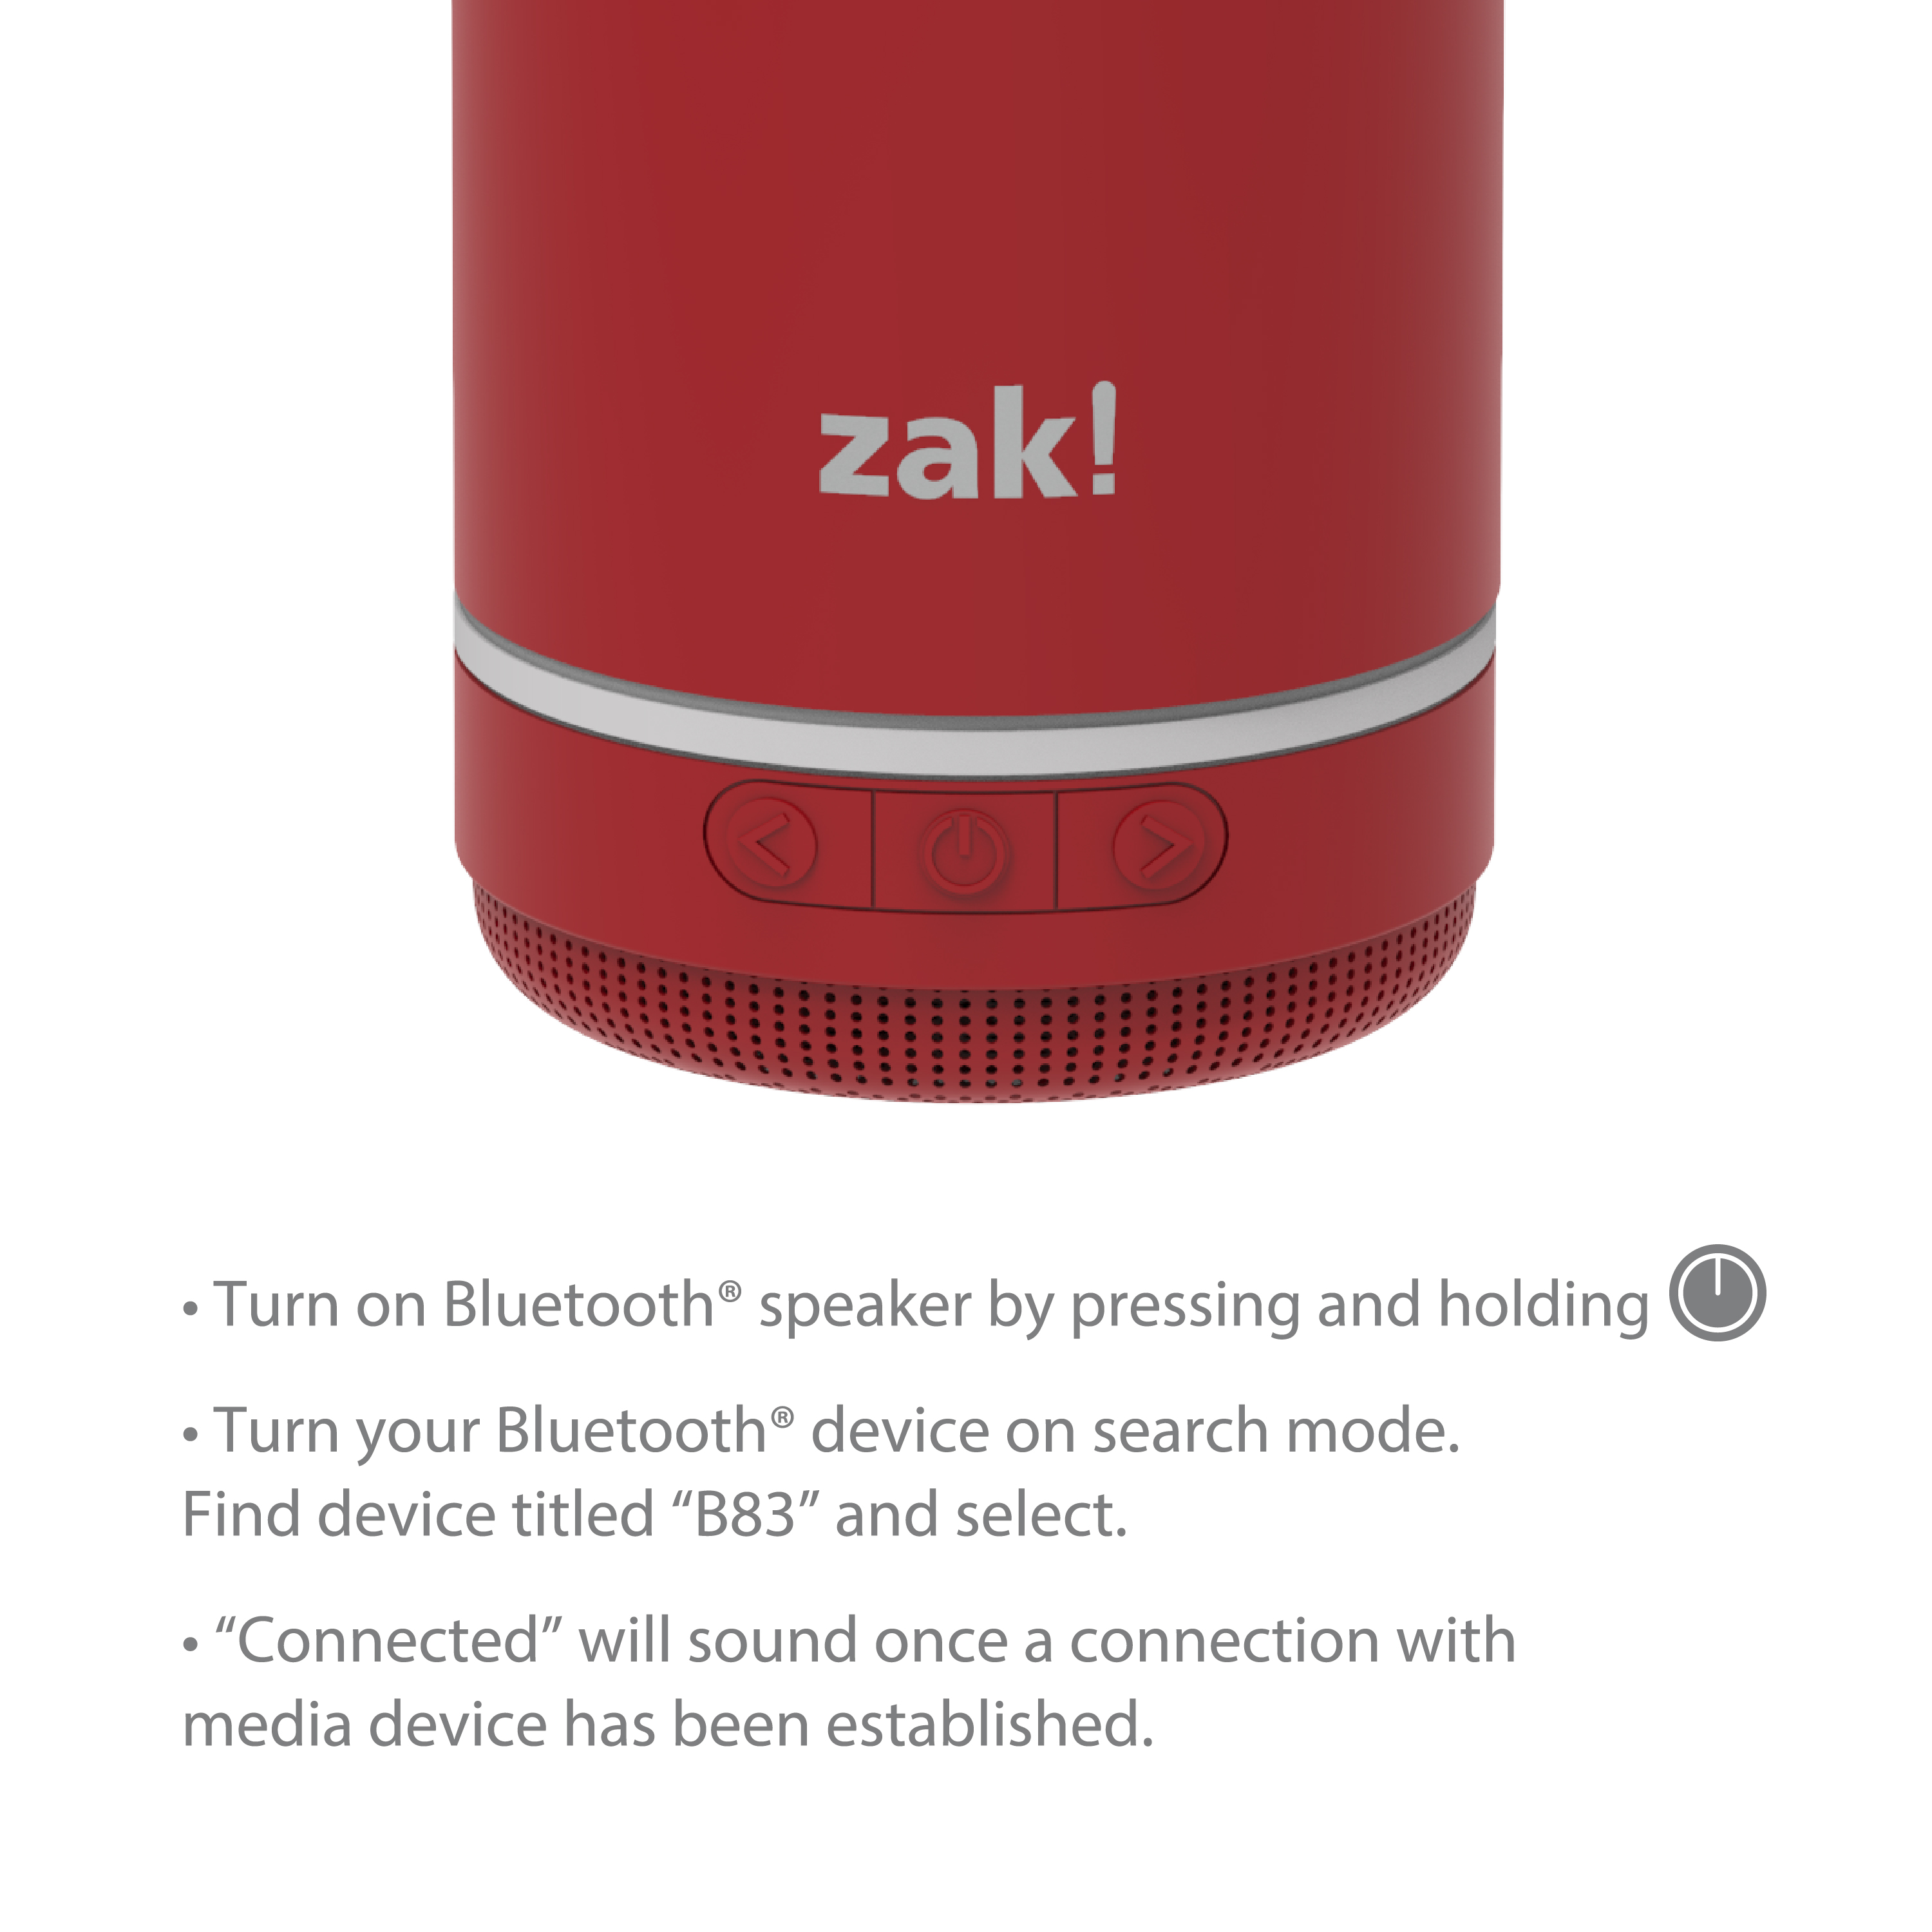 Zak Play 17.5 ounce Stainless Steel Tumbler with Bluetooth Speaker, Red slideshow image 9